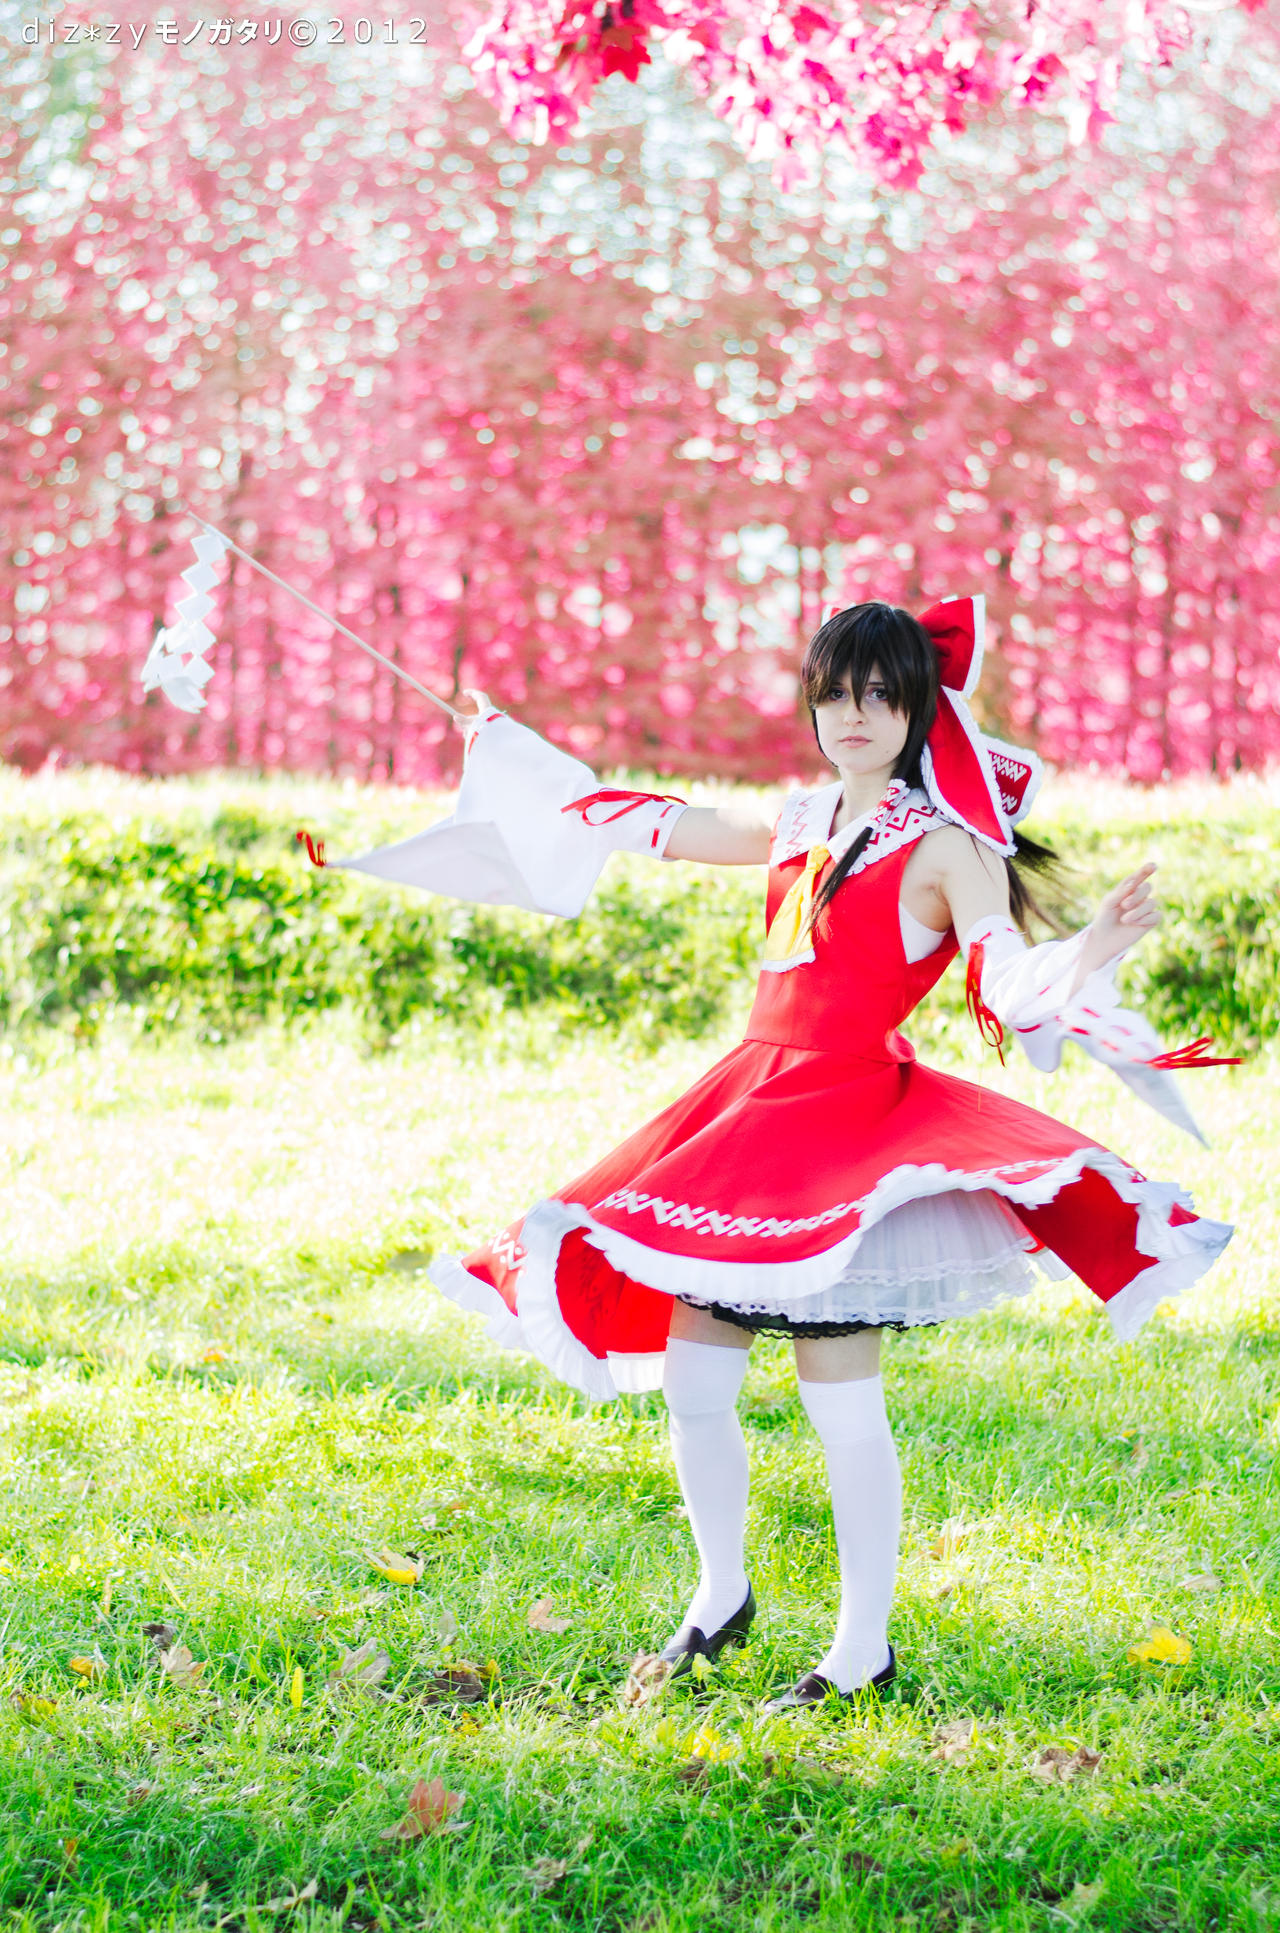 Touhou: From the Blooming Trees by JuriaScarlet